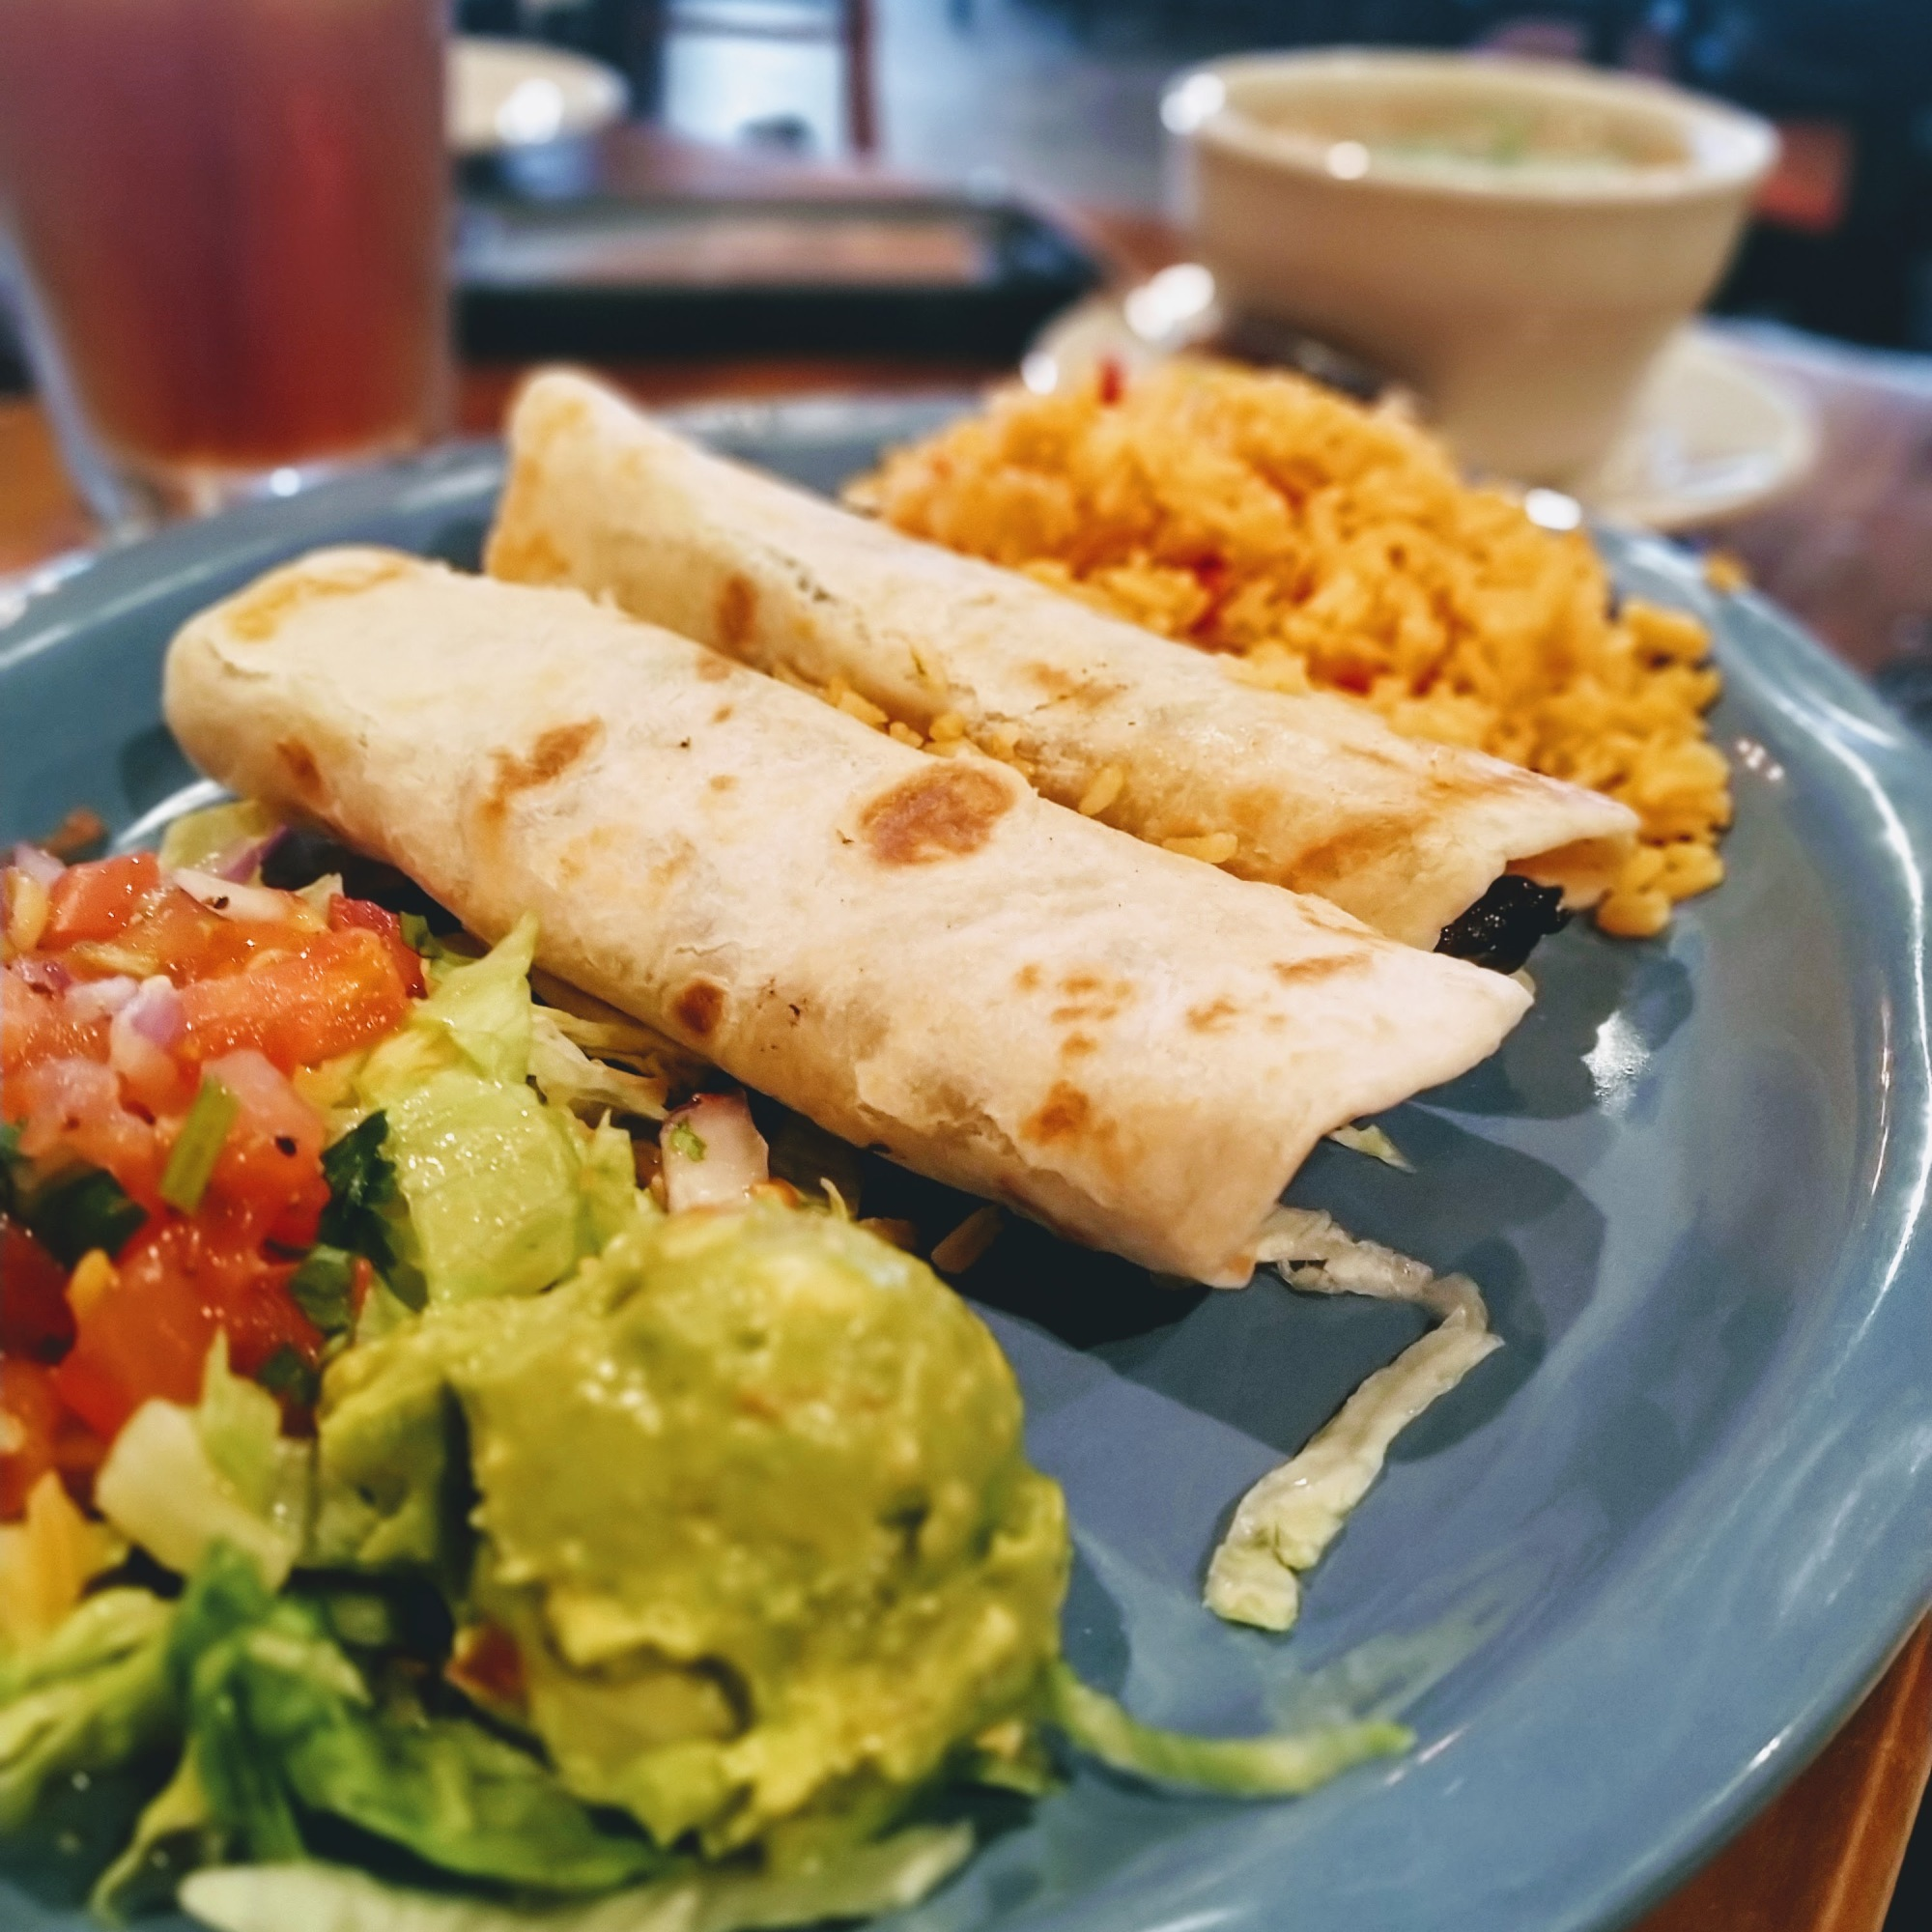 Fresh- pico -de- gallo-fresh-guacomole-spanish-rice-and-tacos-al-carbon-served-with-charo-beans-in-galveston-texas-at-tacos-al-carbon